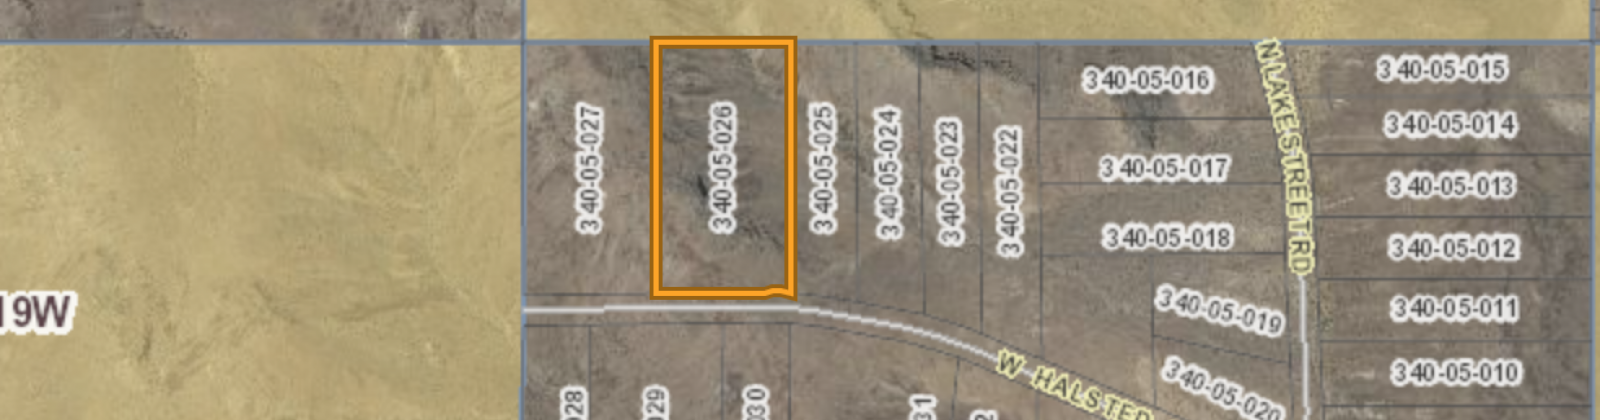 7379 W HALSTED STREET, Golden Valley, Arizona 86413, ,Land,For Sale,7379 W HALSTED STREET,1035